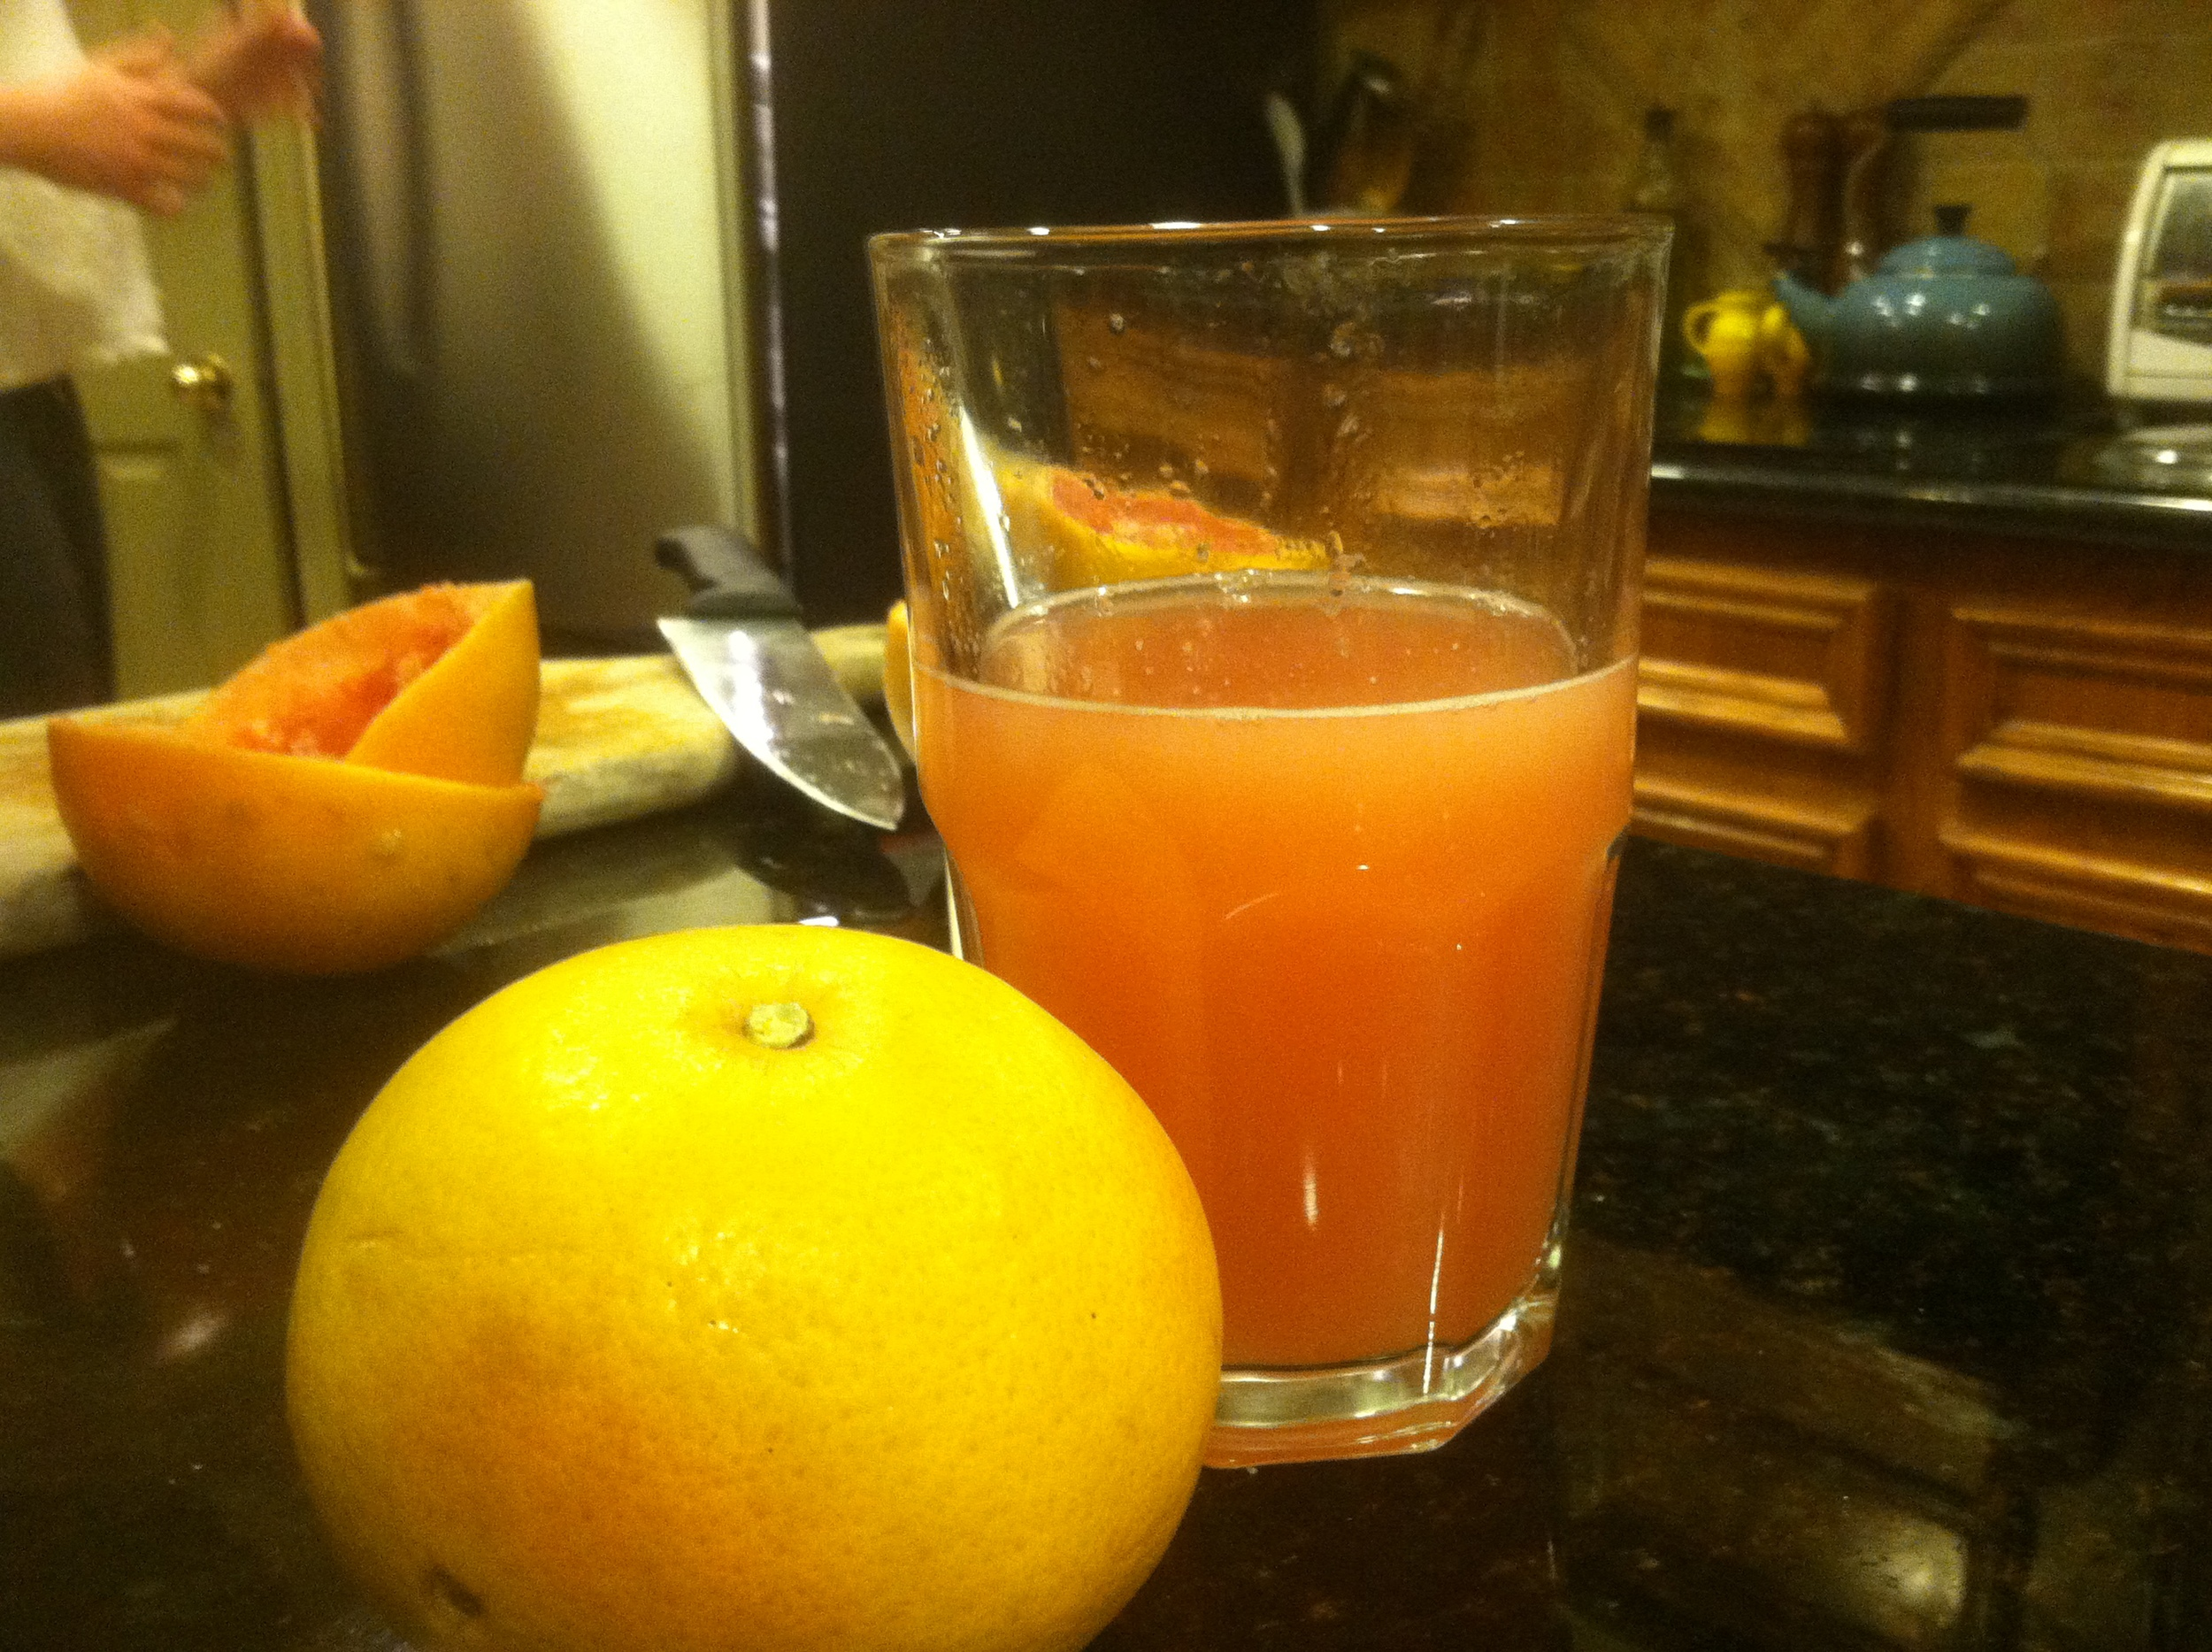 It took about 3 of our grapefruits to get this amount of juicy juice.